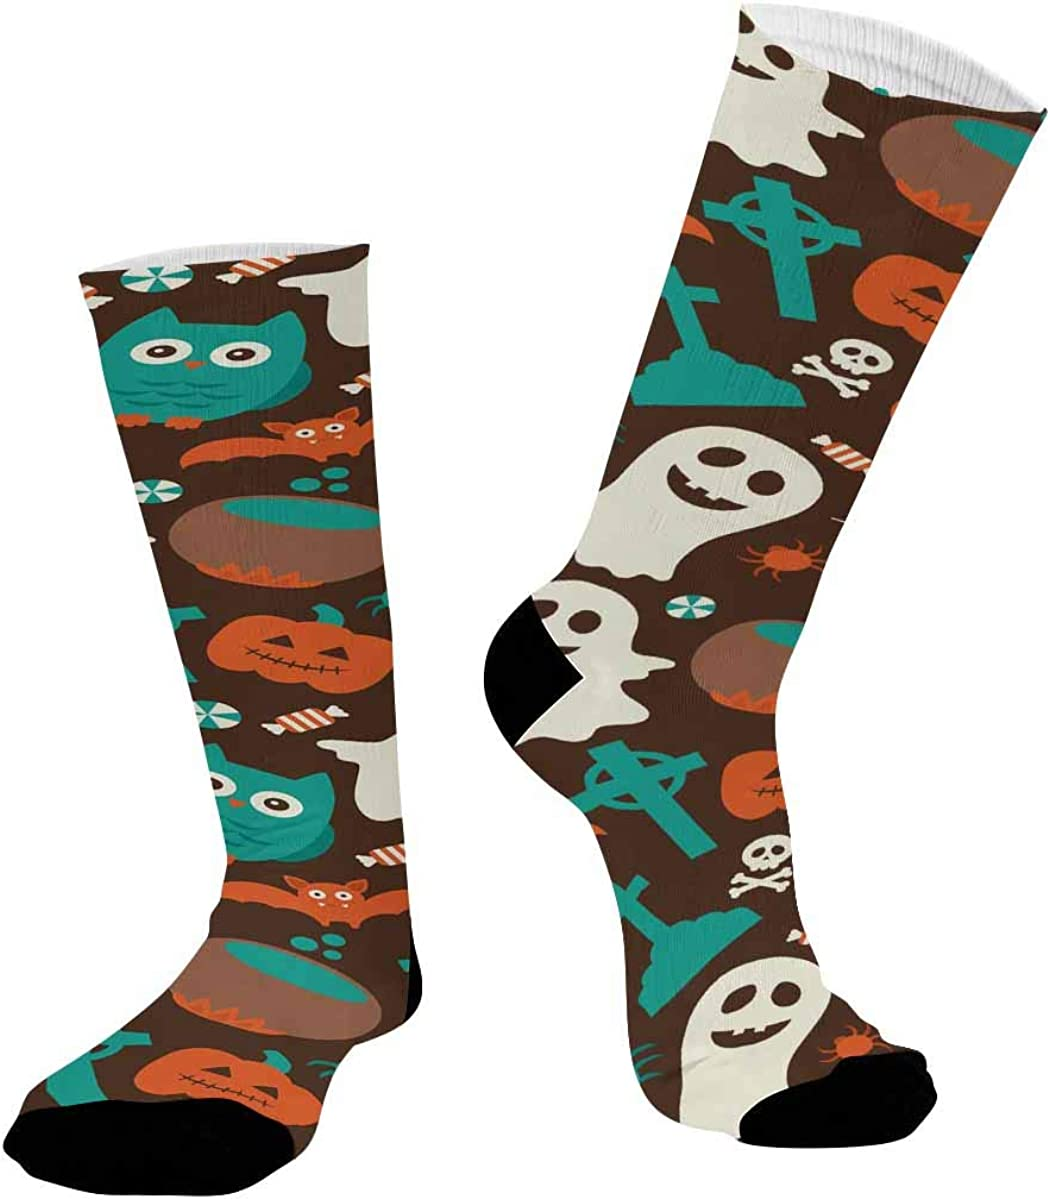 INTERESTPRINT Athletic Sublimated Crew Socks for Adults Halloween Pumkin, Ghost, Owl